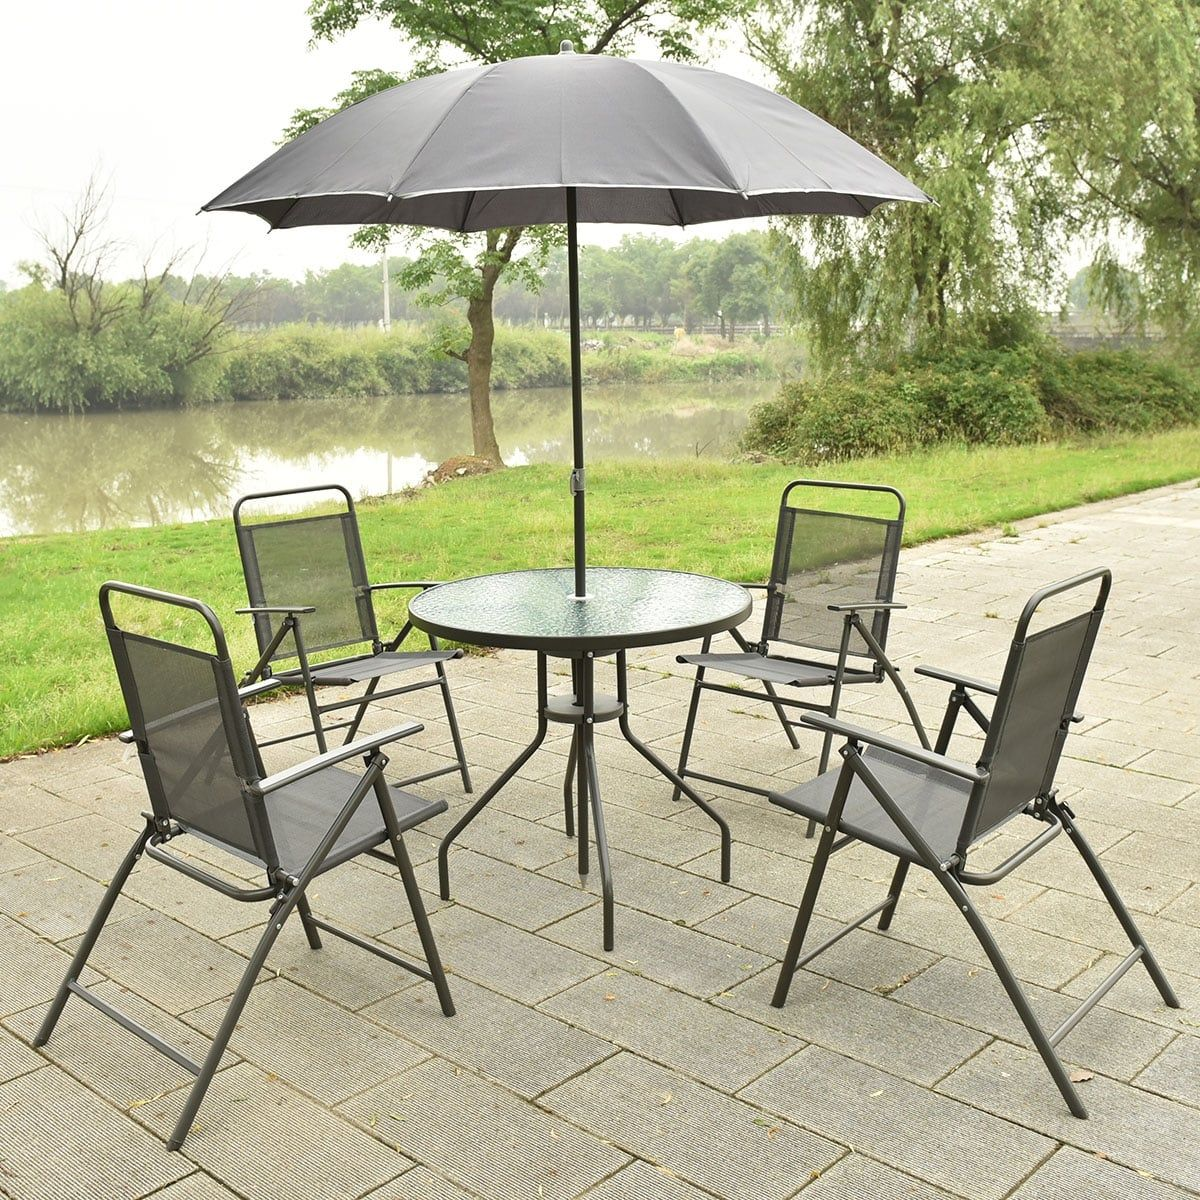 Costway 6 Pcs Patio Garden Set Furniture Umbrella Gray With 4